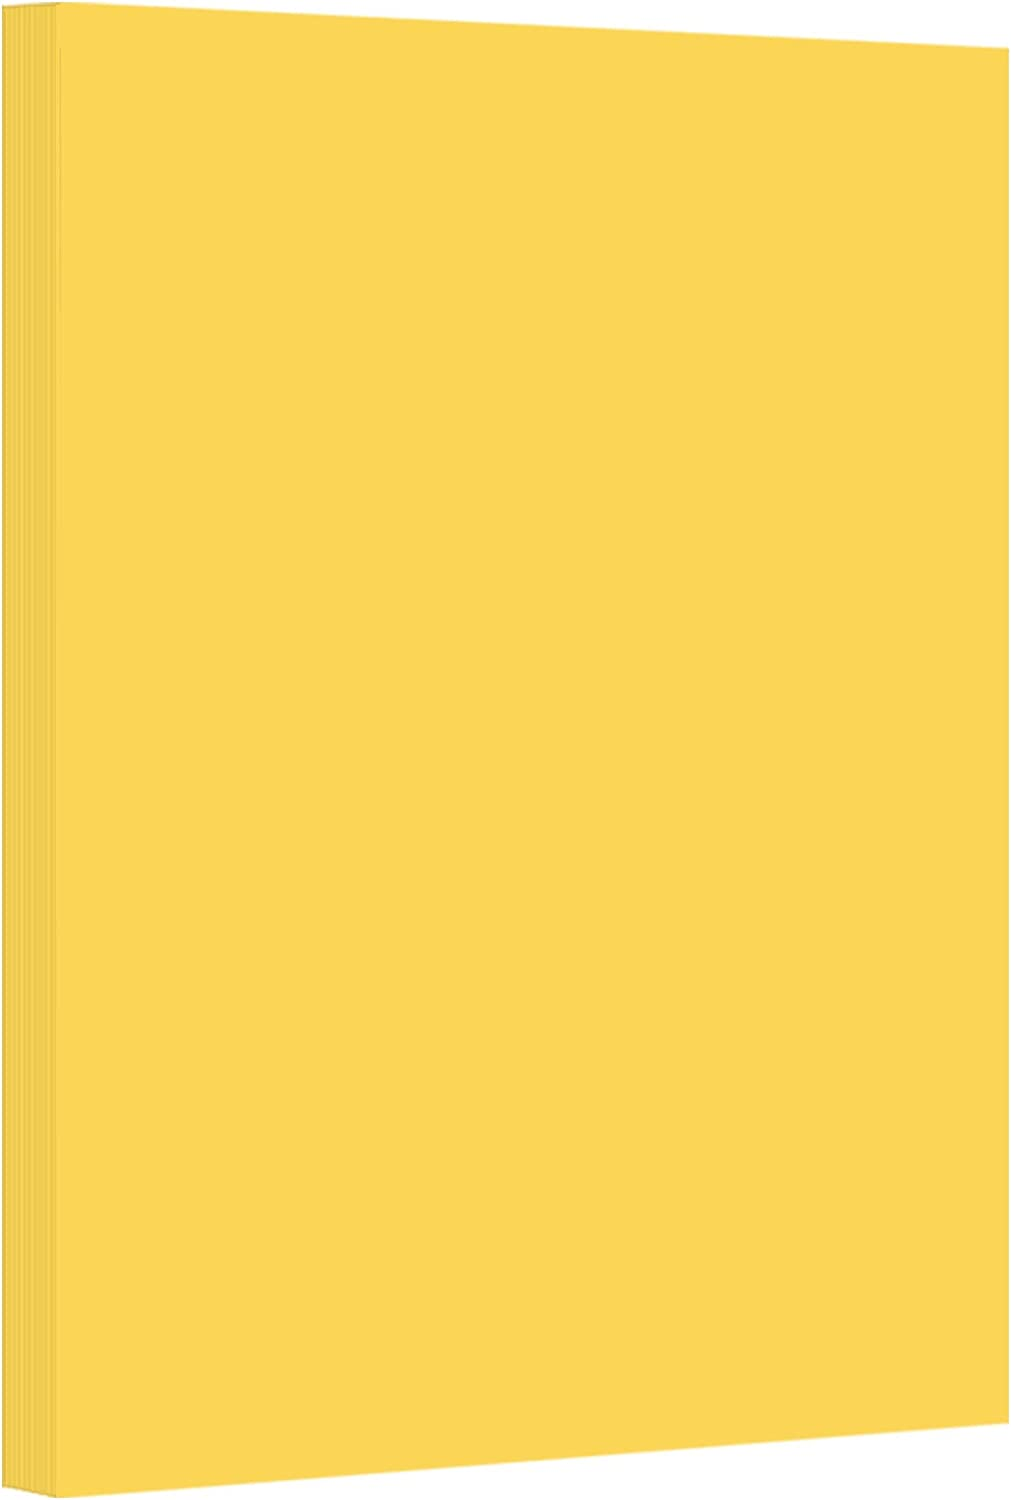 Goldenrod Pastel Color Card Stock Paper, 67lb Cover Medium Weight Cardstock, for Arts & Crafts, Coloring, Announcements, Stationary Printing at School, Office, Home   8.5 x 11   50 Sheets Per Pack